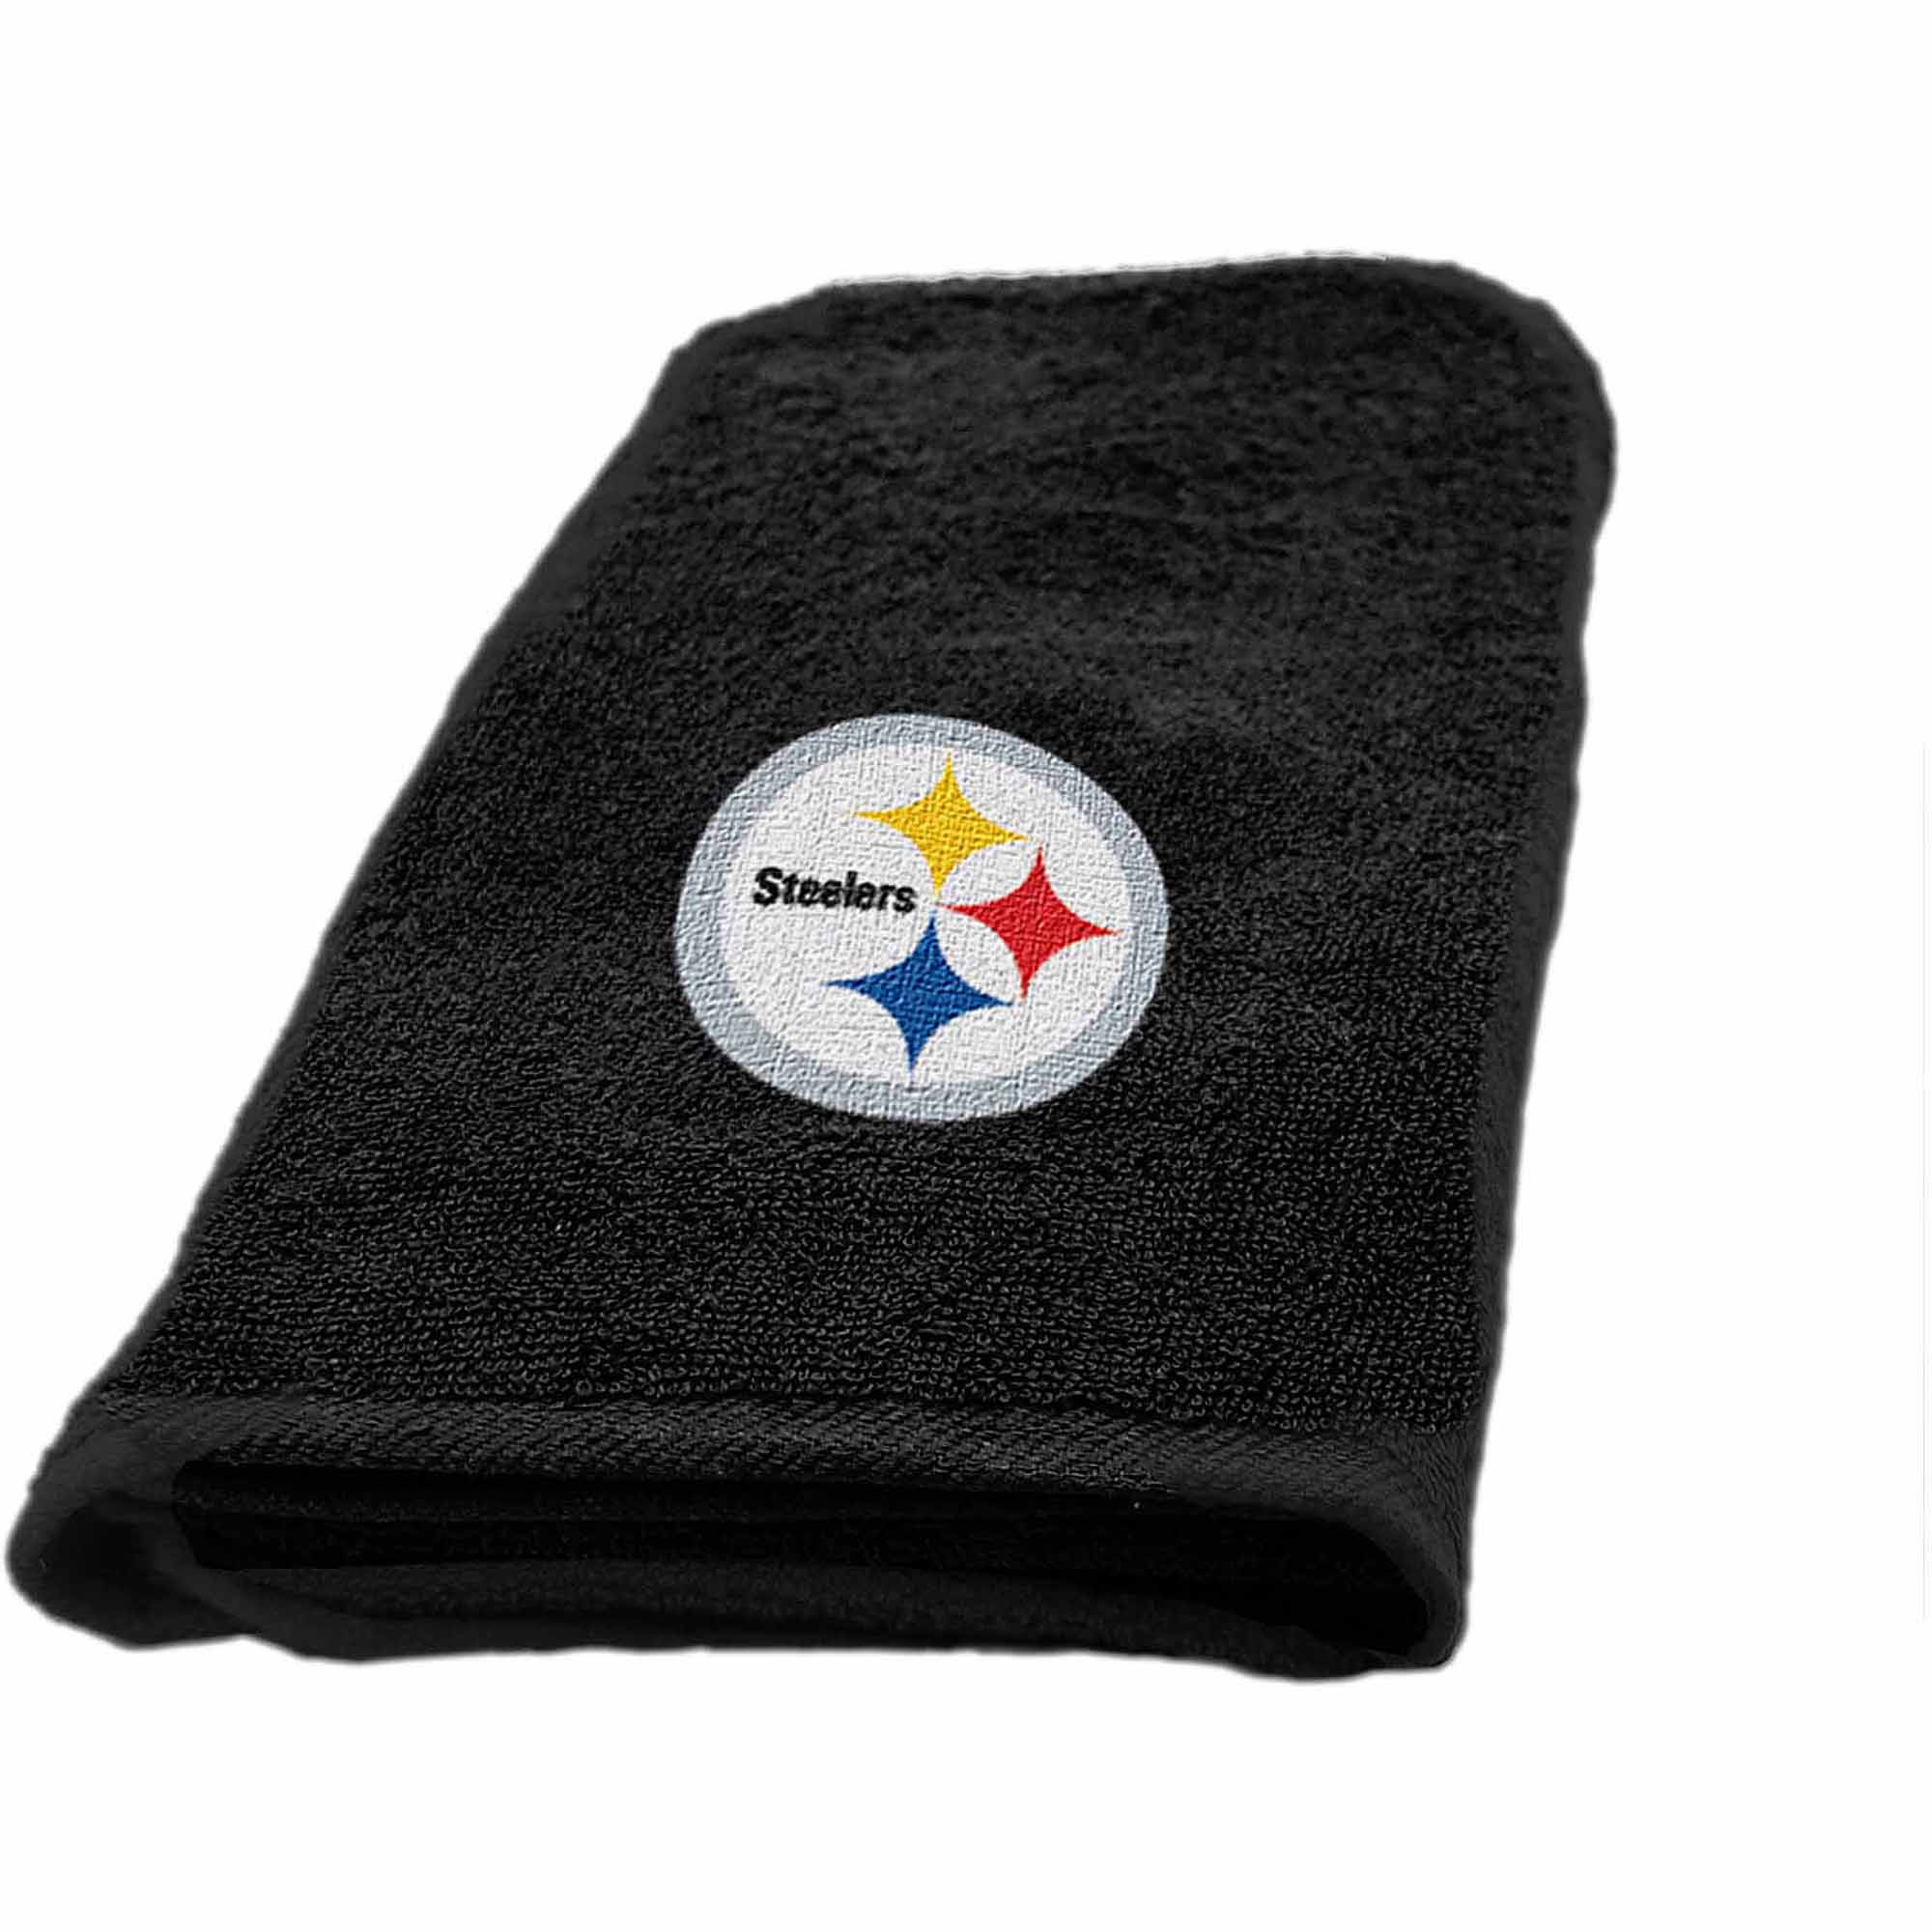 NFL Pittsburgh Steelers Hand Towel